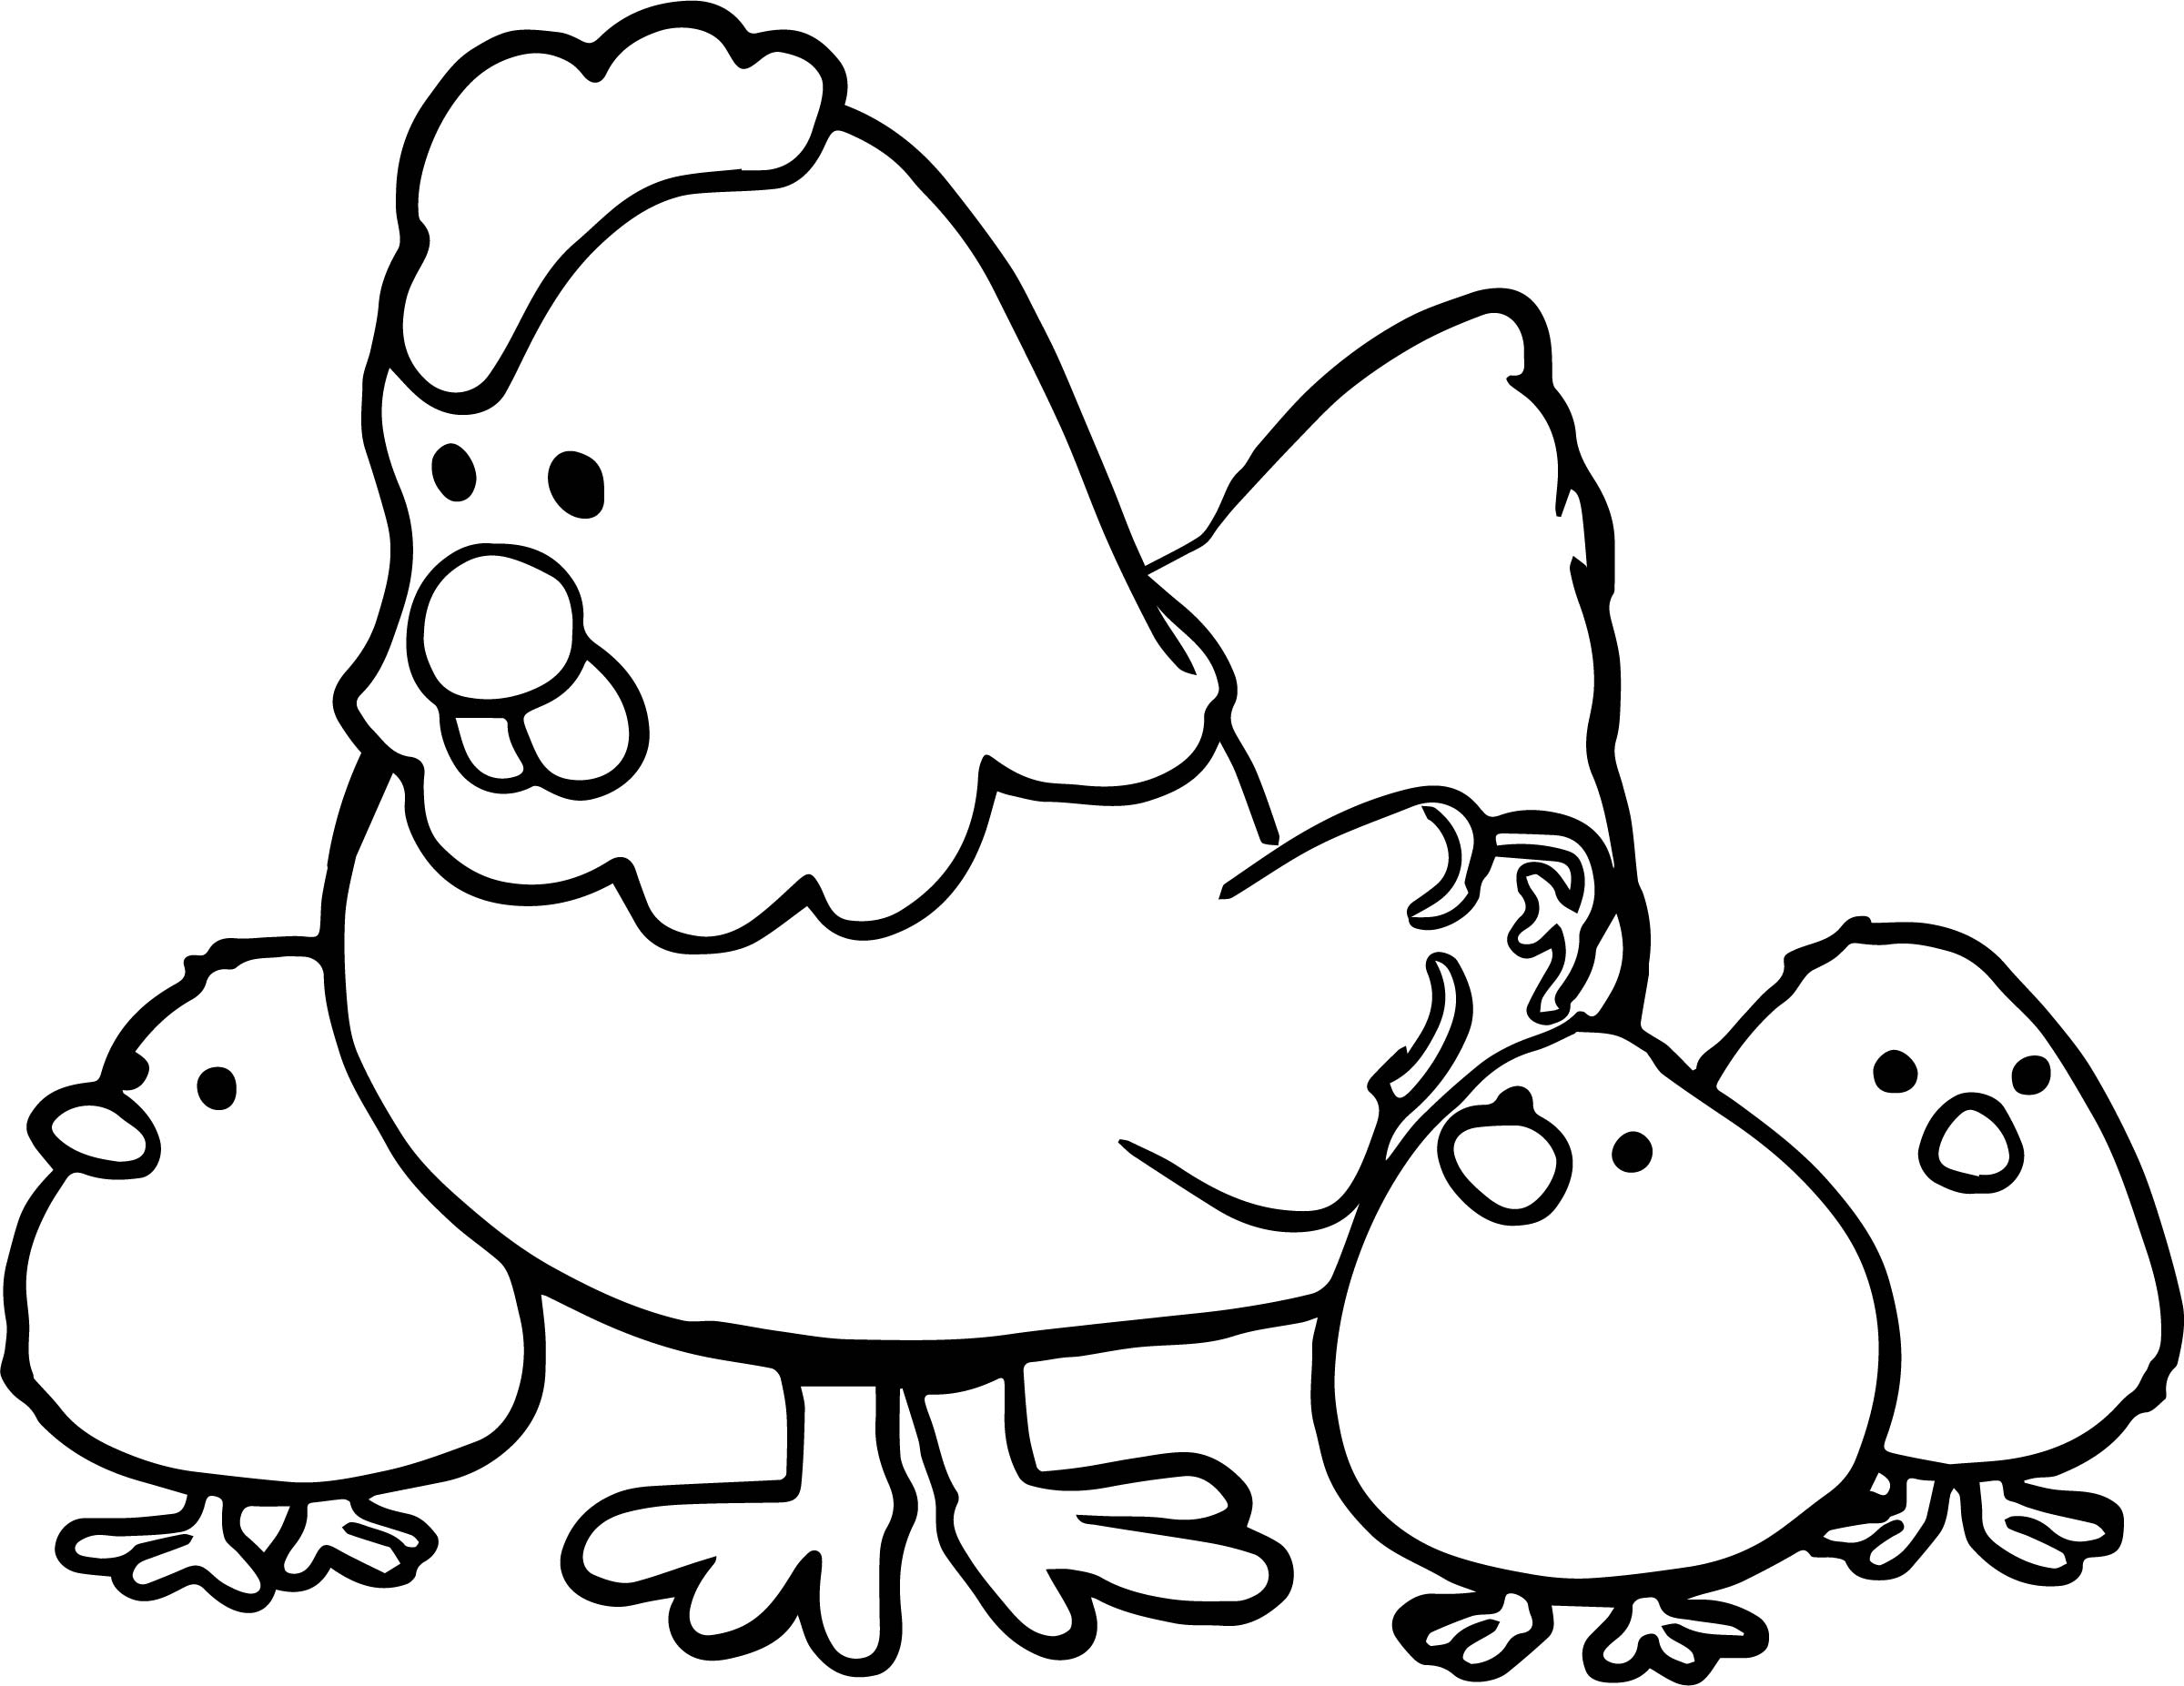 picture of a rooster to color rooster coloring page free printable coloring pages rooster to color of picture a